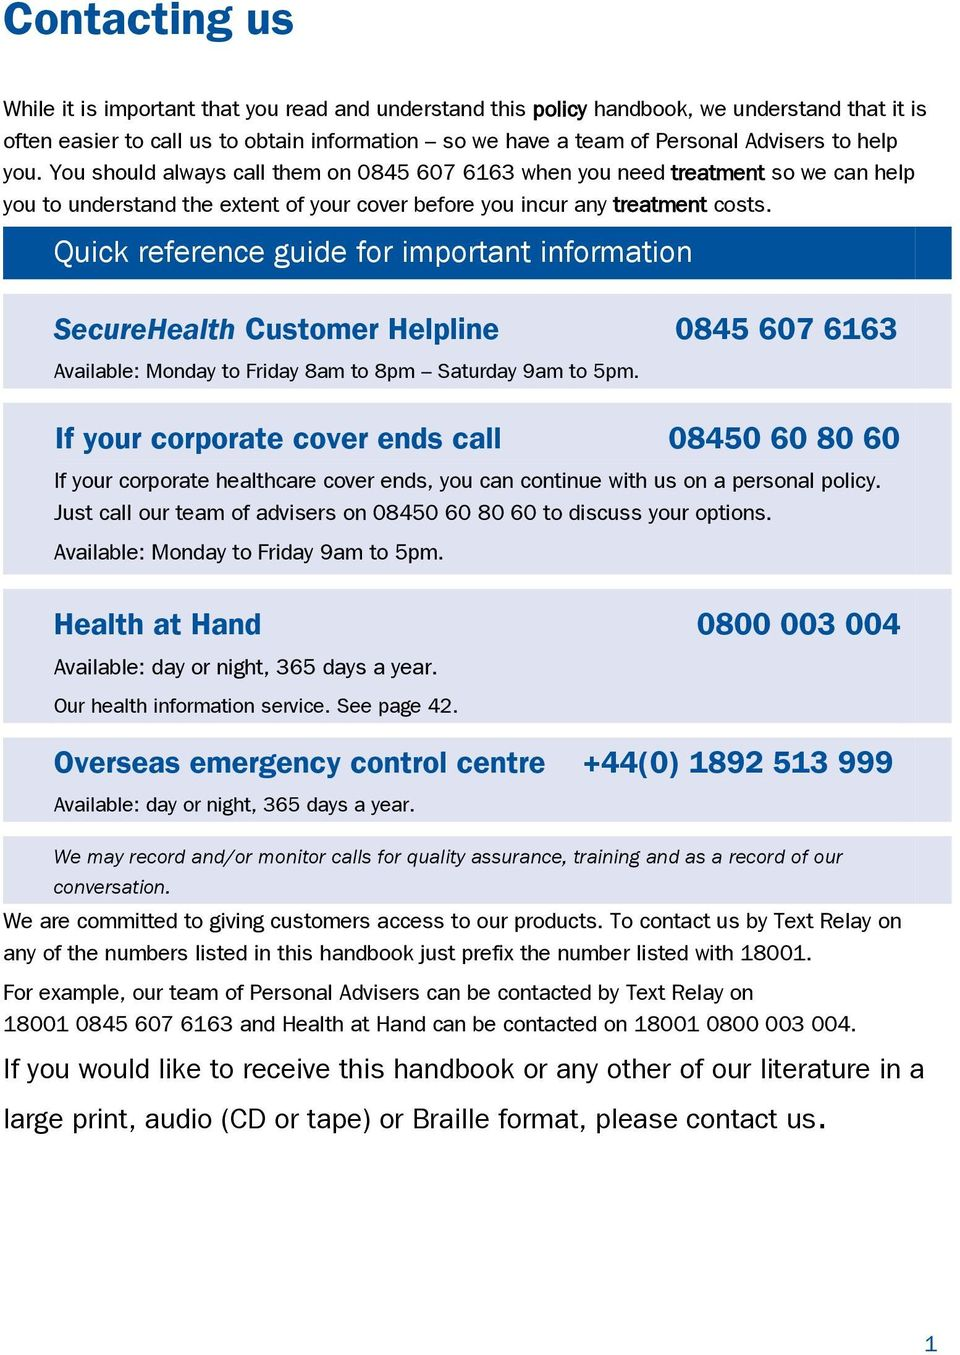 Quick reference guide for important information SecureHealth Customer Helpline 0845 607 6163 Available: Monday to Friday 8am to 8pm Saturday 9am to 5pm.